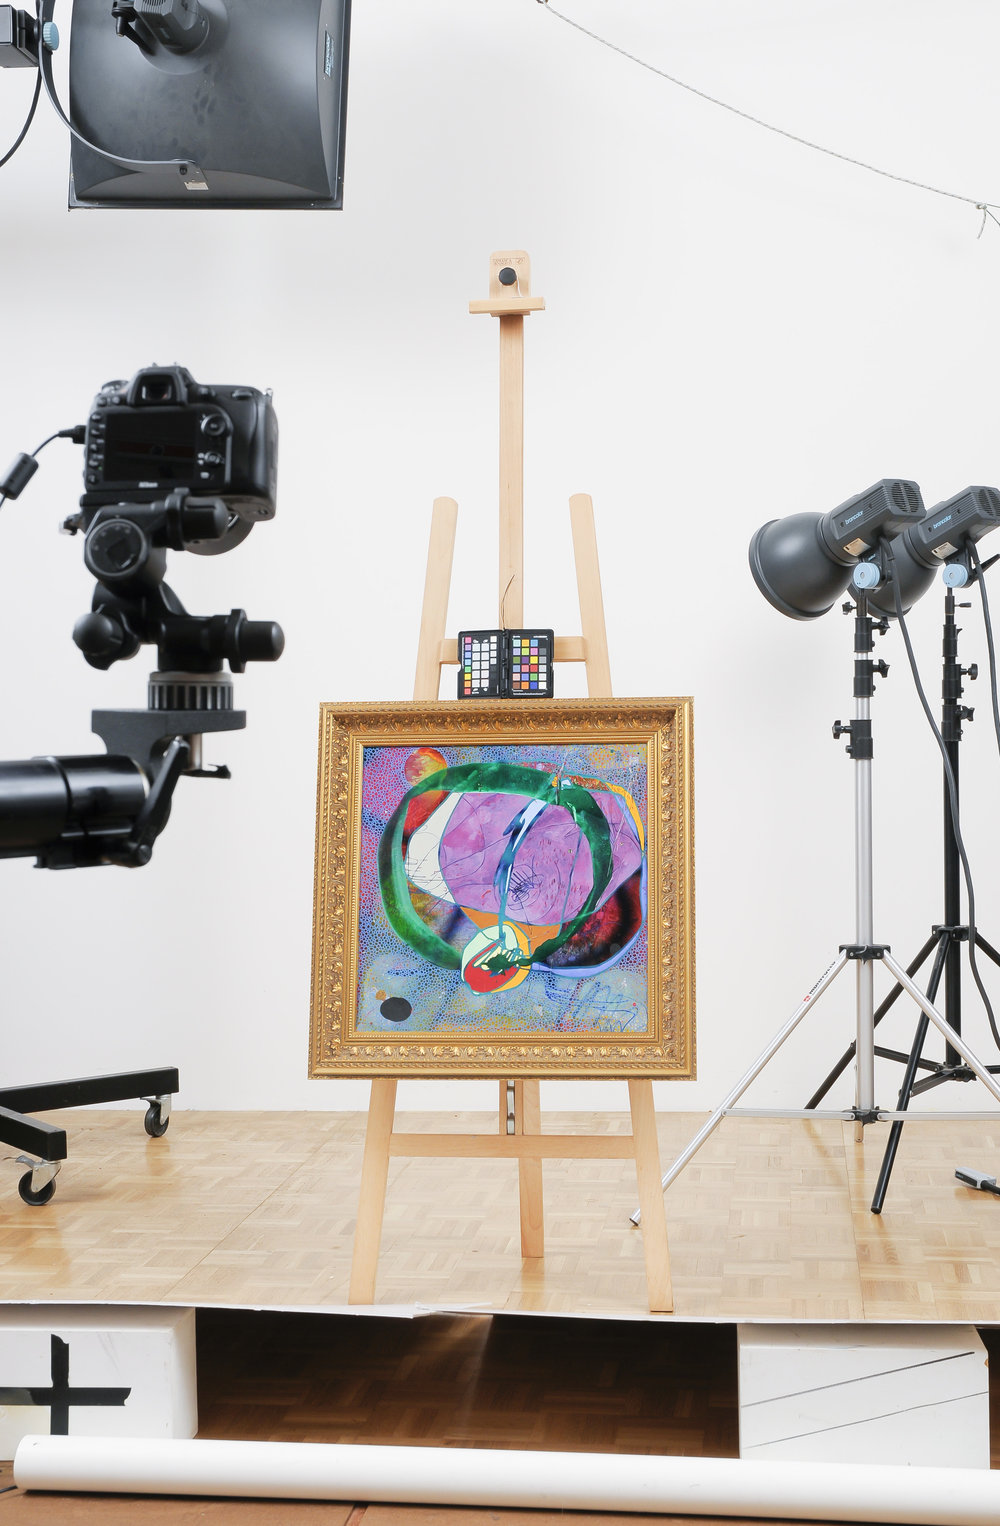 Installation photography by Sait Akkirman, courtesy of the artist and PAULNACHE - photographed for Art Collector magazine